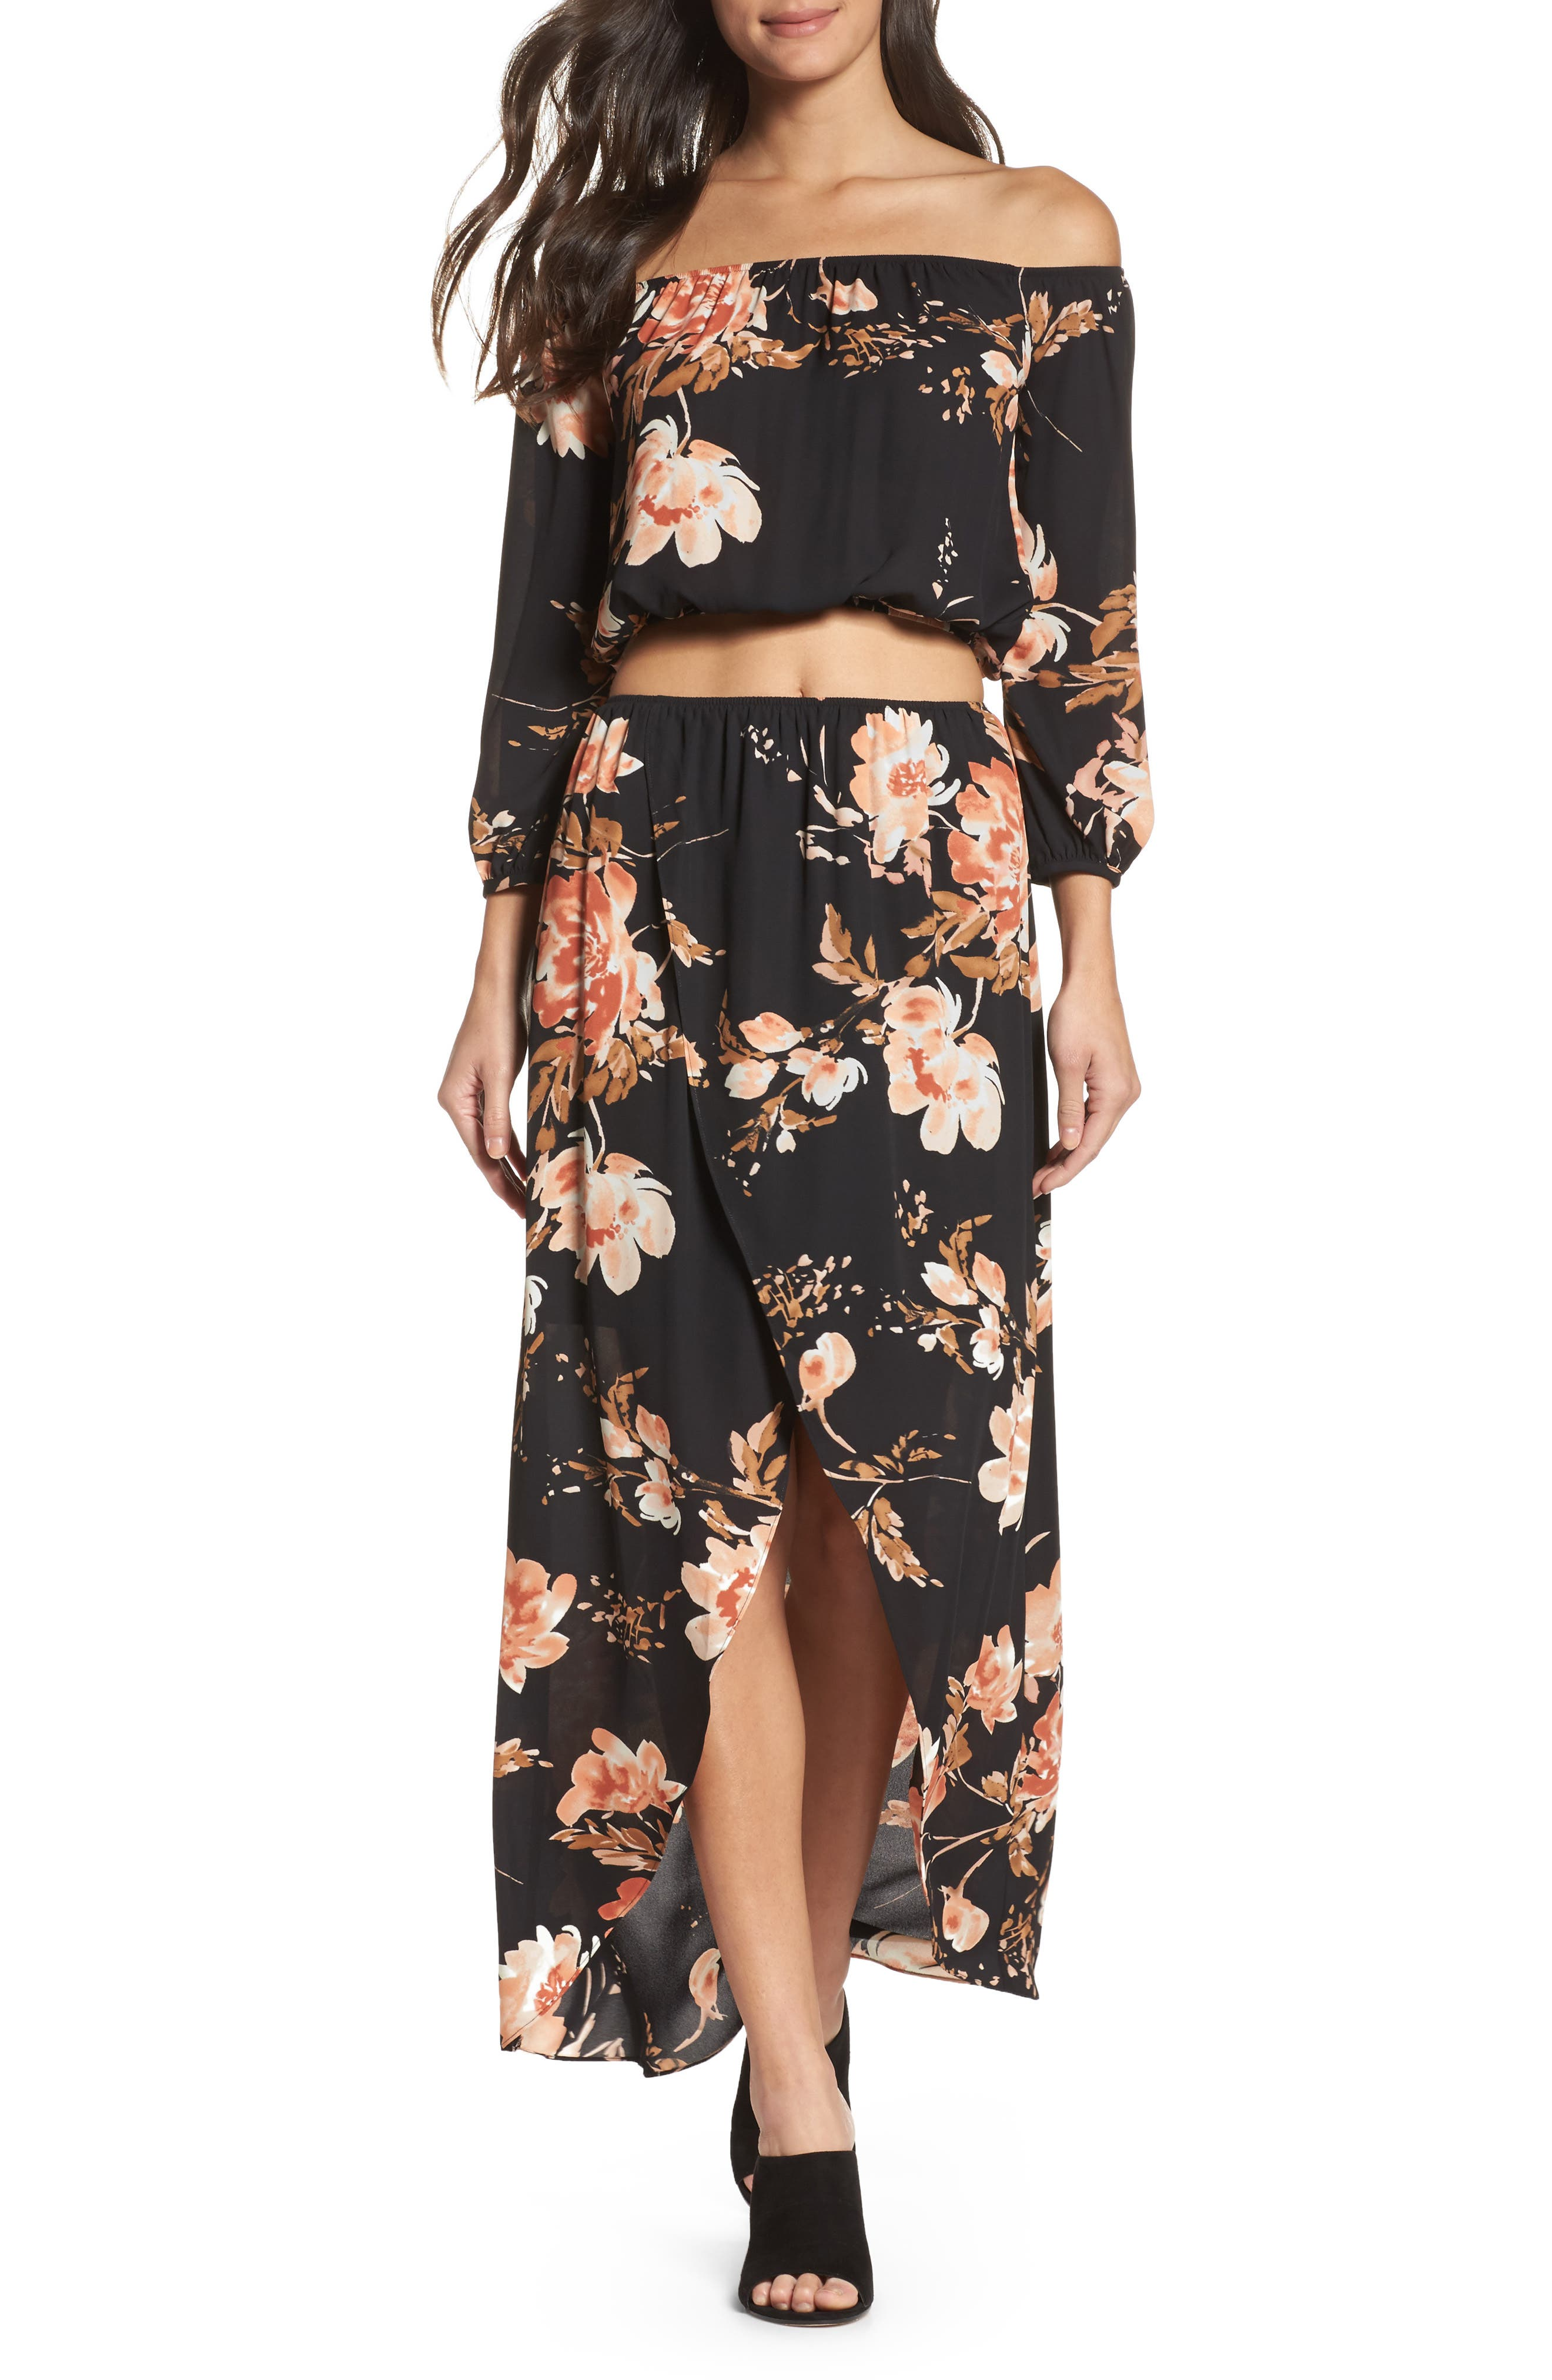 Ali & Jay Floral Fever Two-Piece Dress